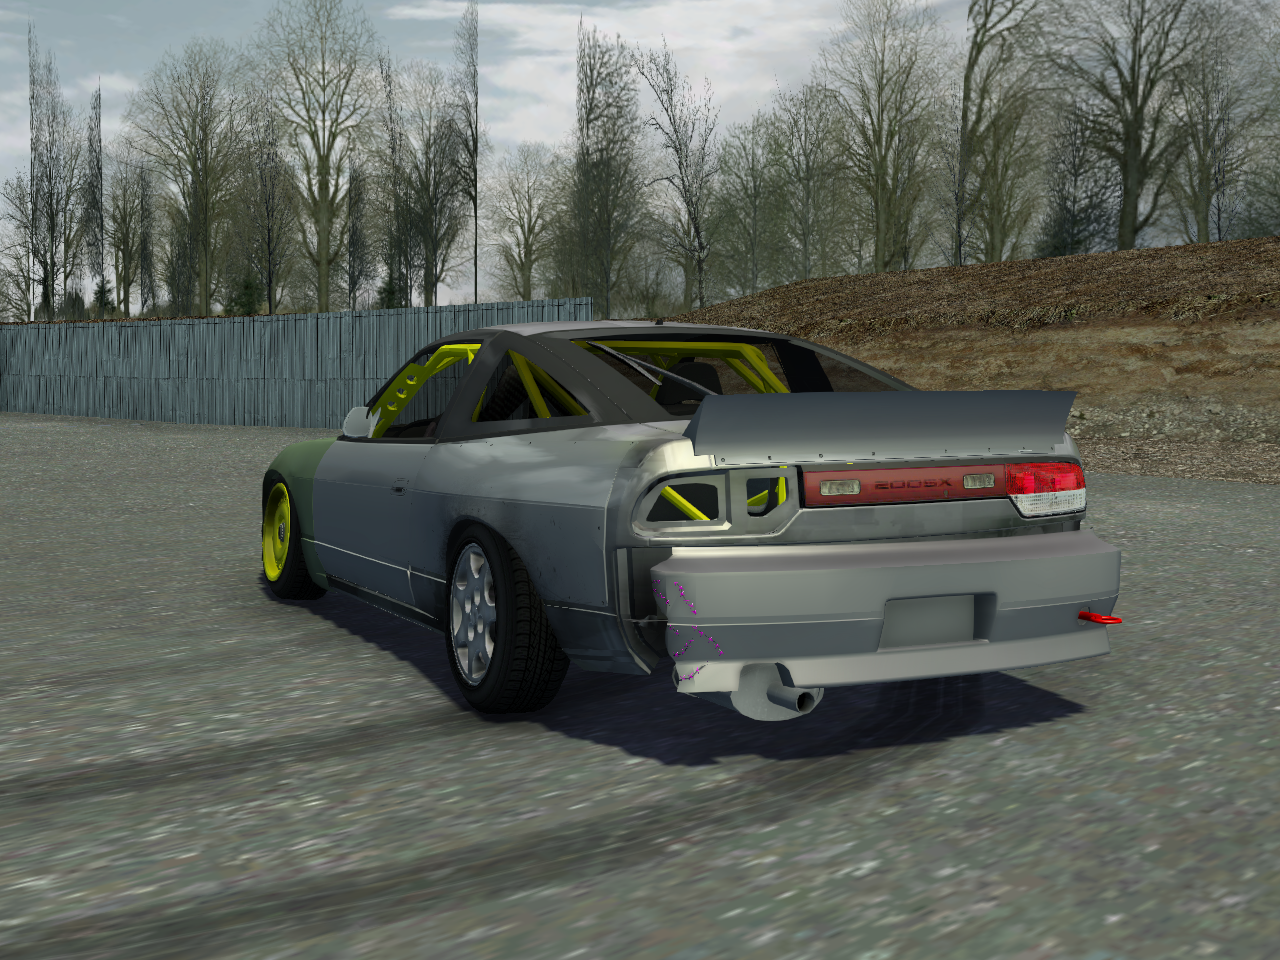 Virtual Stance Works Forums Slrr Classifieds